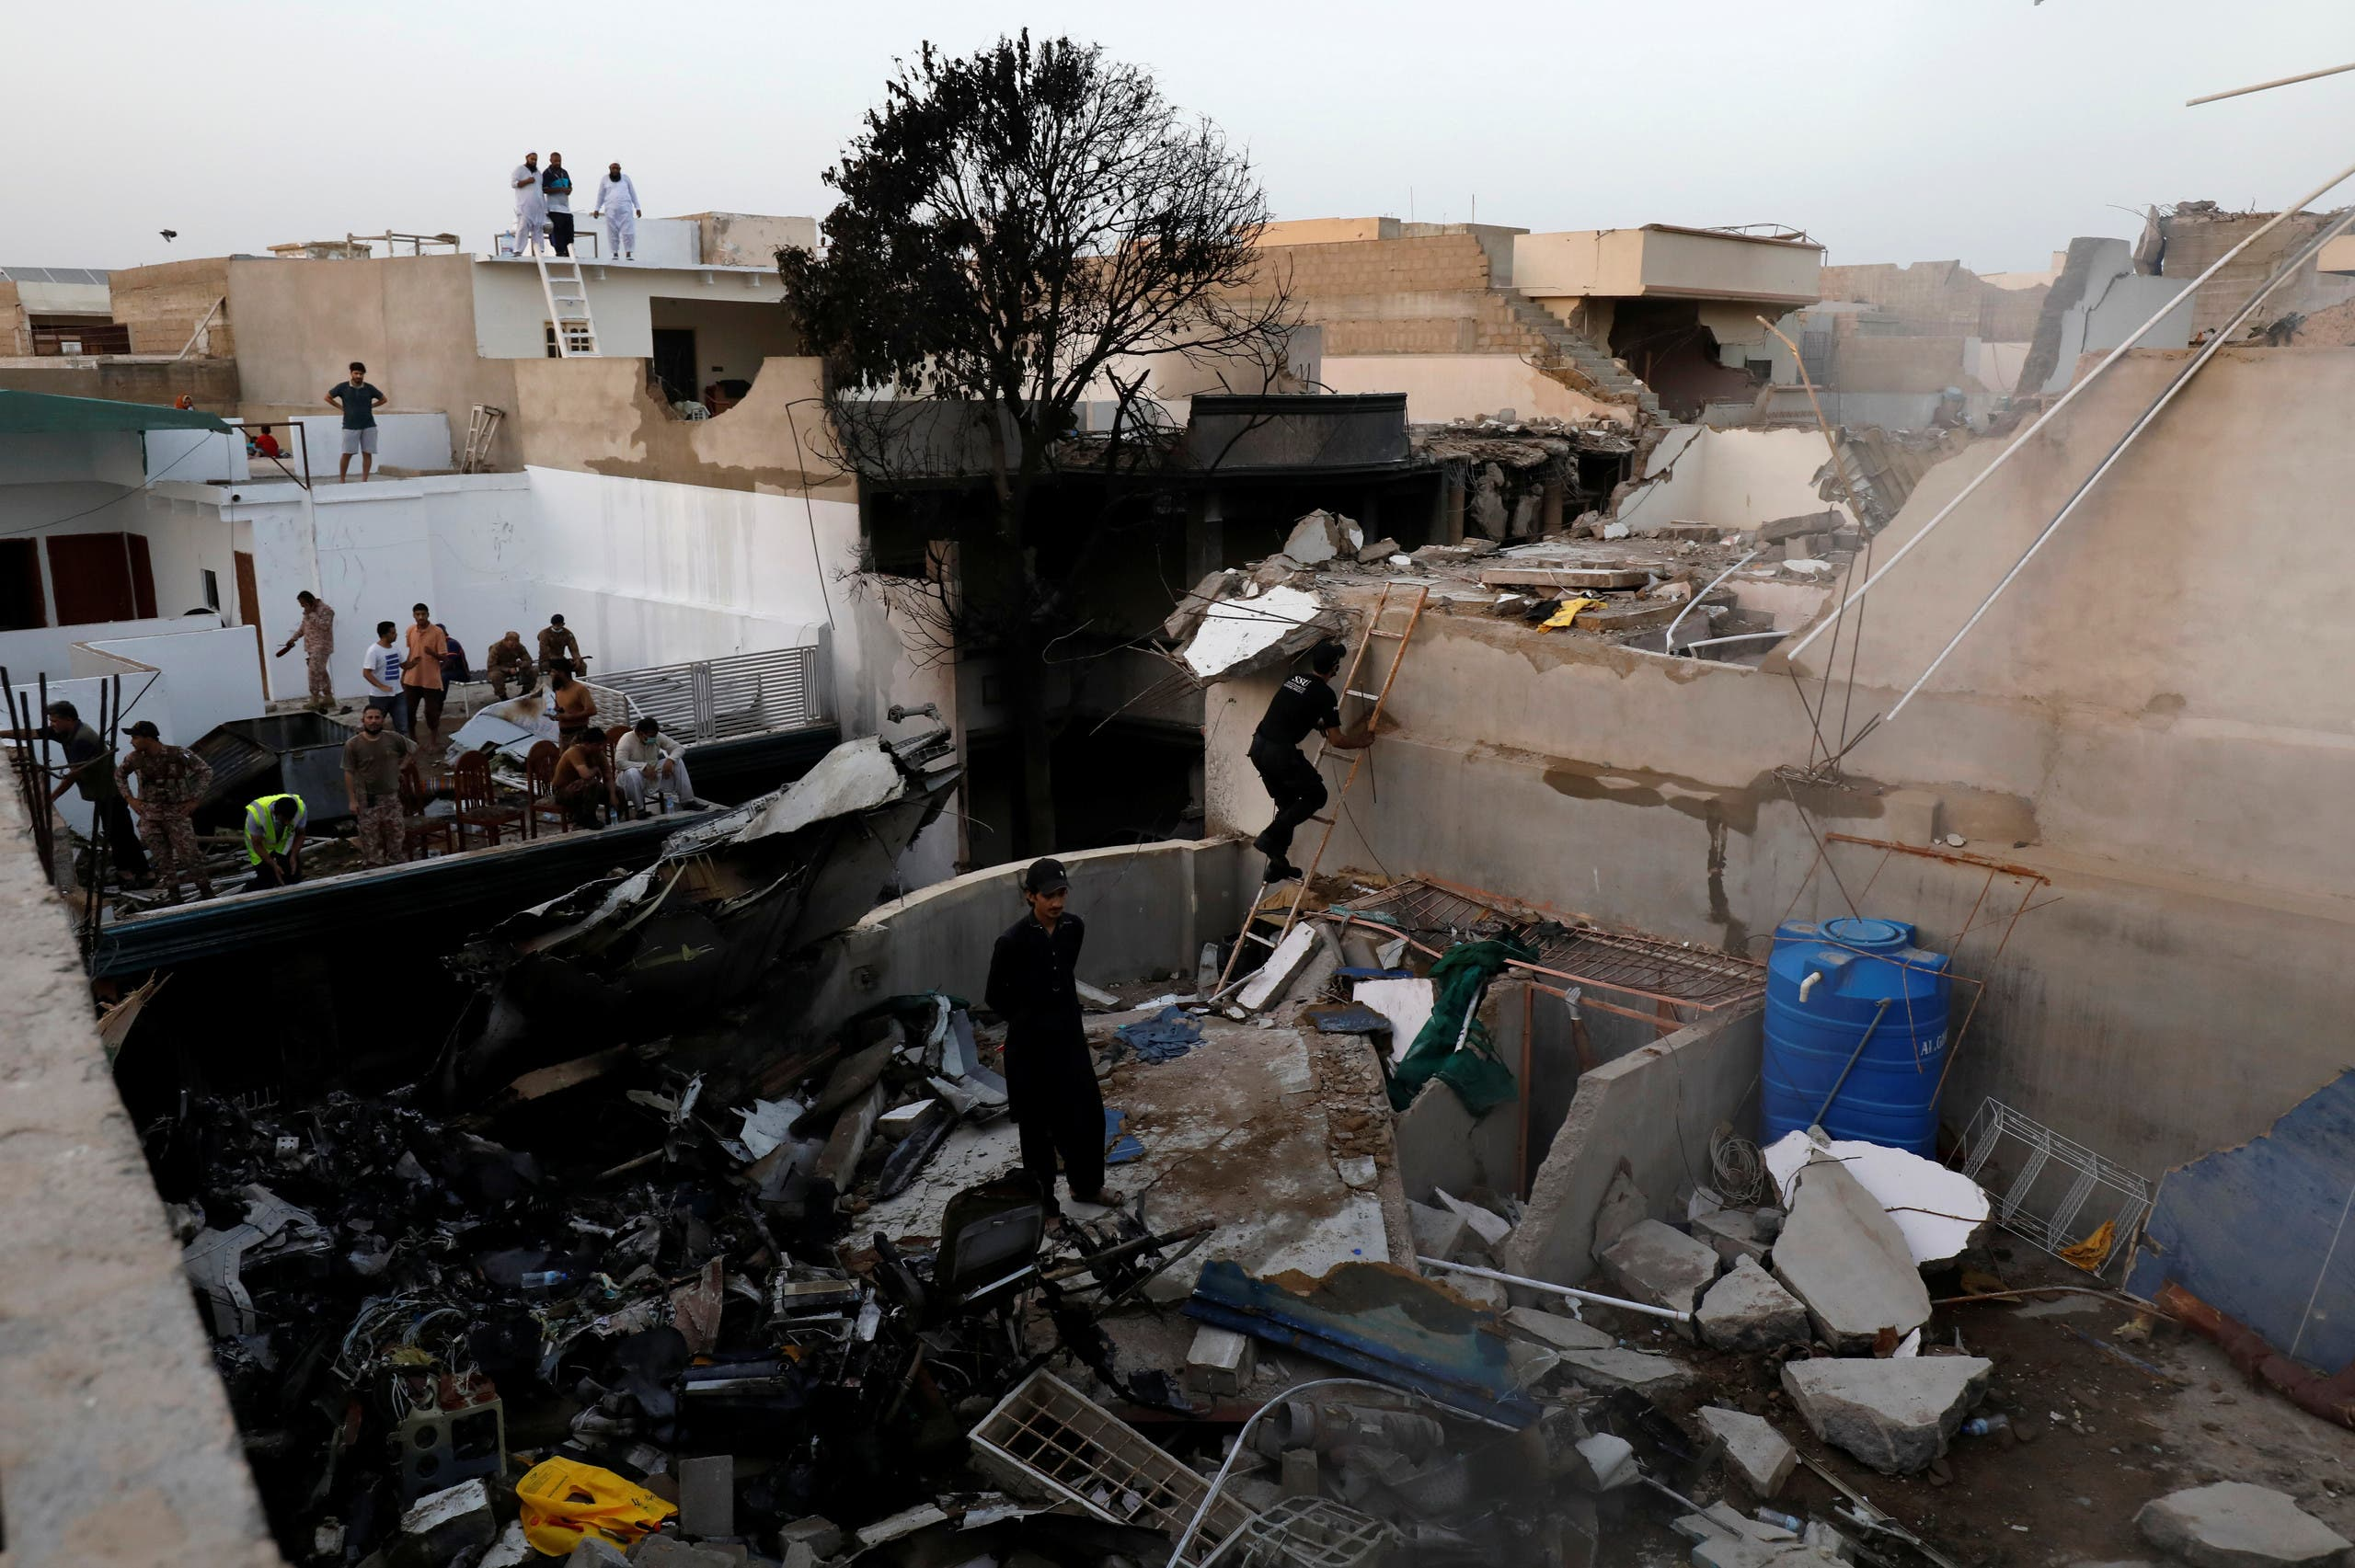 People stand on a roof of a house amidst debris of a passenger plane, crashed in a residential area near an airport in Karachi, Pakistan May 22, 2020. (Reuters)